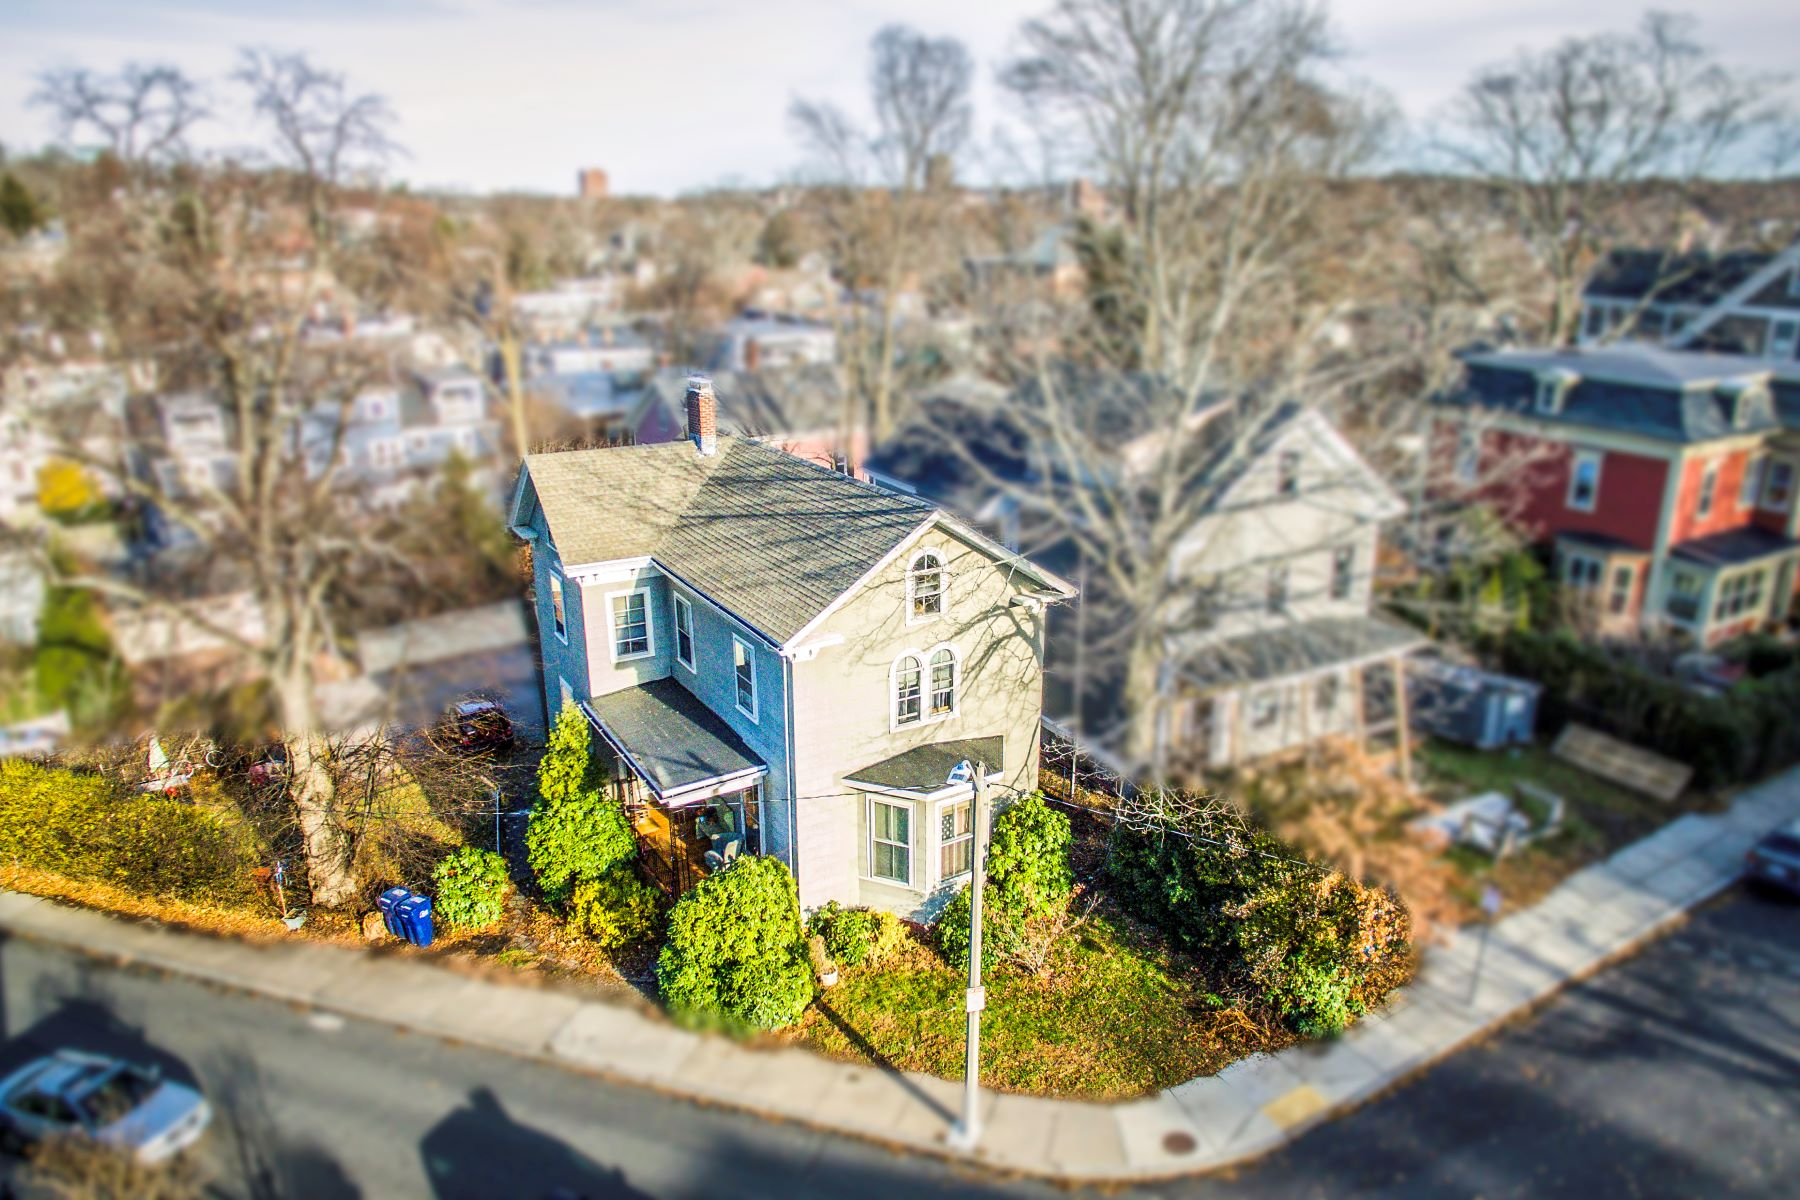 House for Sale at 8 Alveston St, Boston 8 Alveston St Boston, Massachusetts 02130 United States